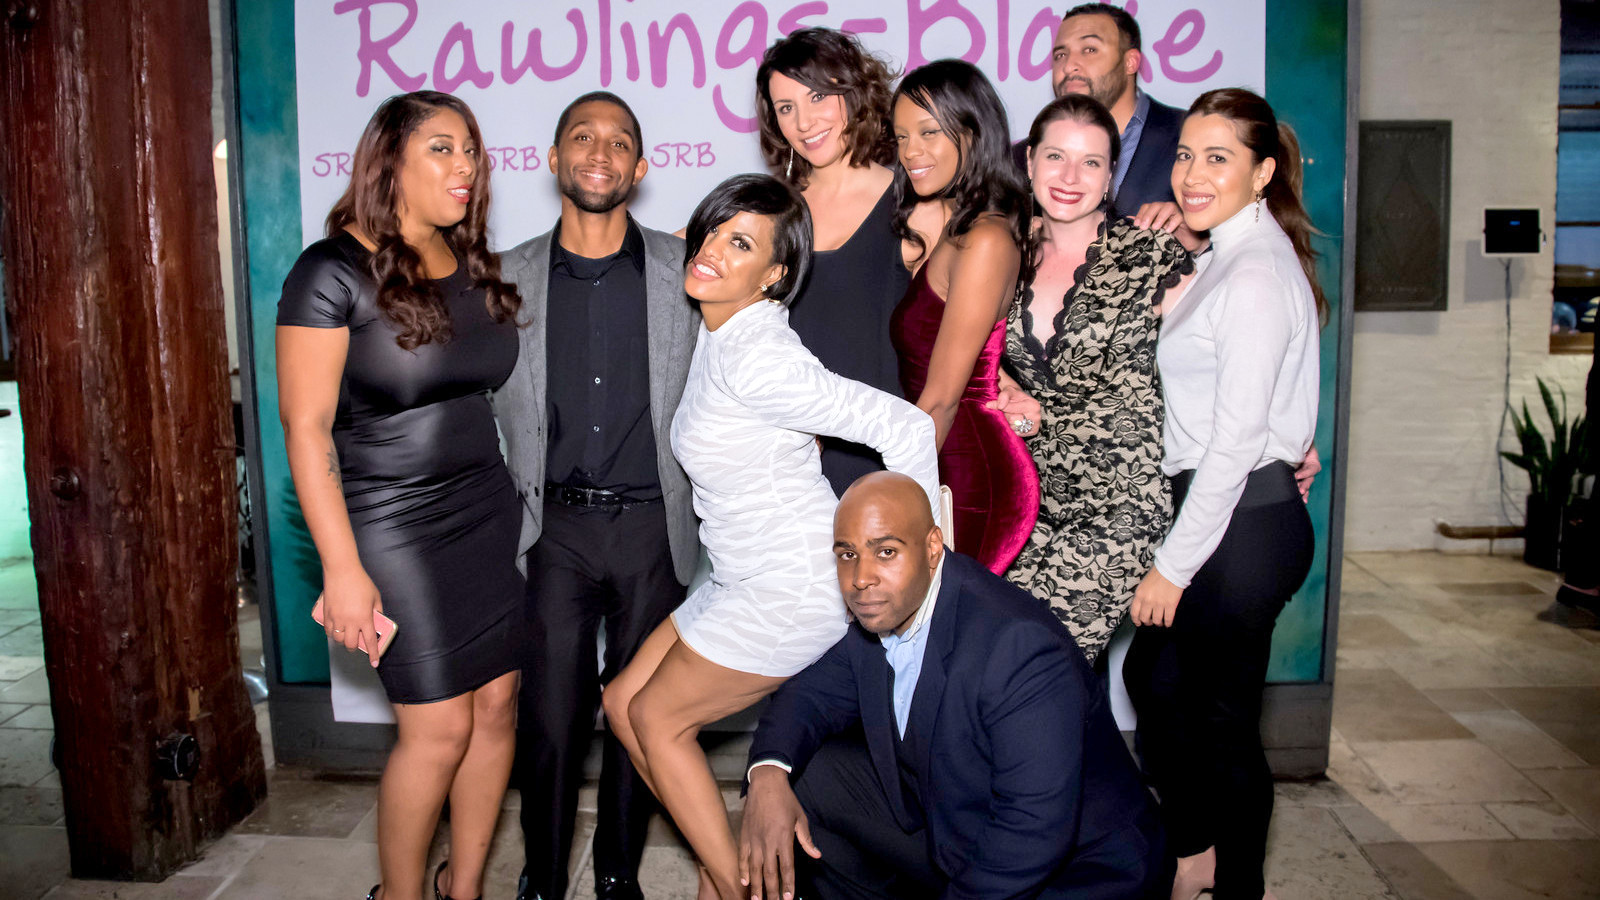 Rawlings-Blake (in white) poses with guests at the Bar Vasquez party, including her chief of staff Kaliope Parthemos (center) and City Councilman Brandon M. Scott (second left). (Glenwood Jackson Studios)